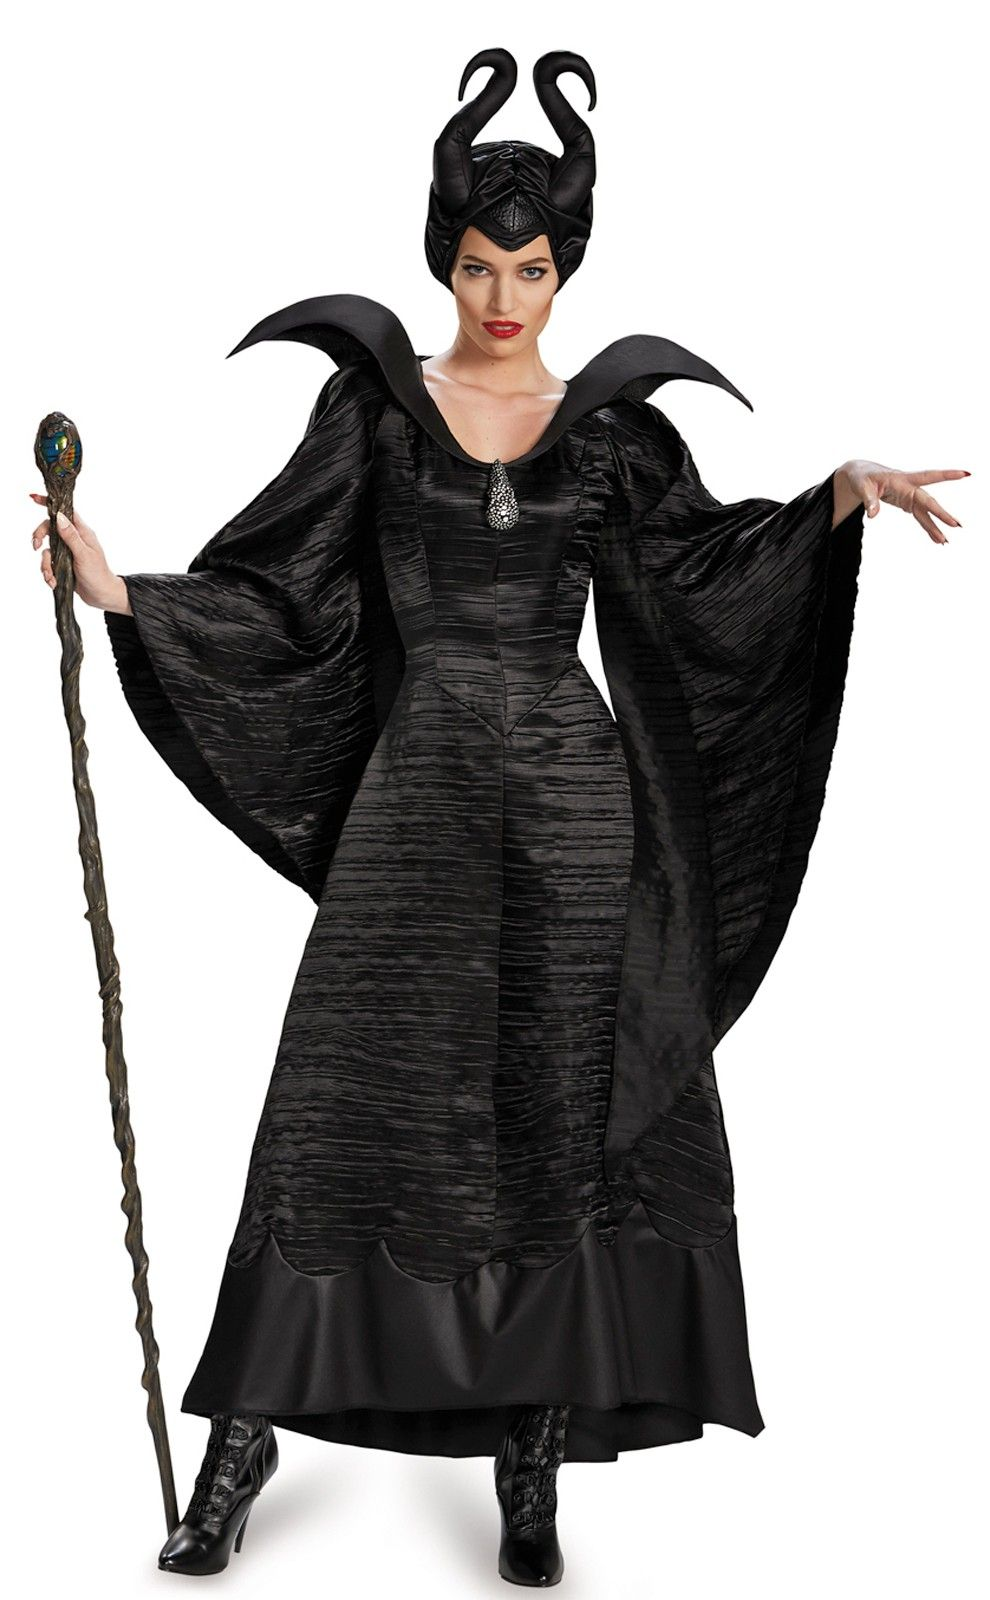 Maleficent Deluxe Christening Black Gown Adult Costume | Costumes.com.au  sc 1 st  Pinterest & Maleficent Deluxe Christening Black Gown Adult Costume | Costumes ...